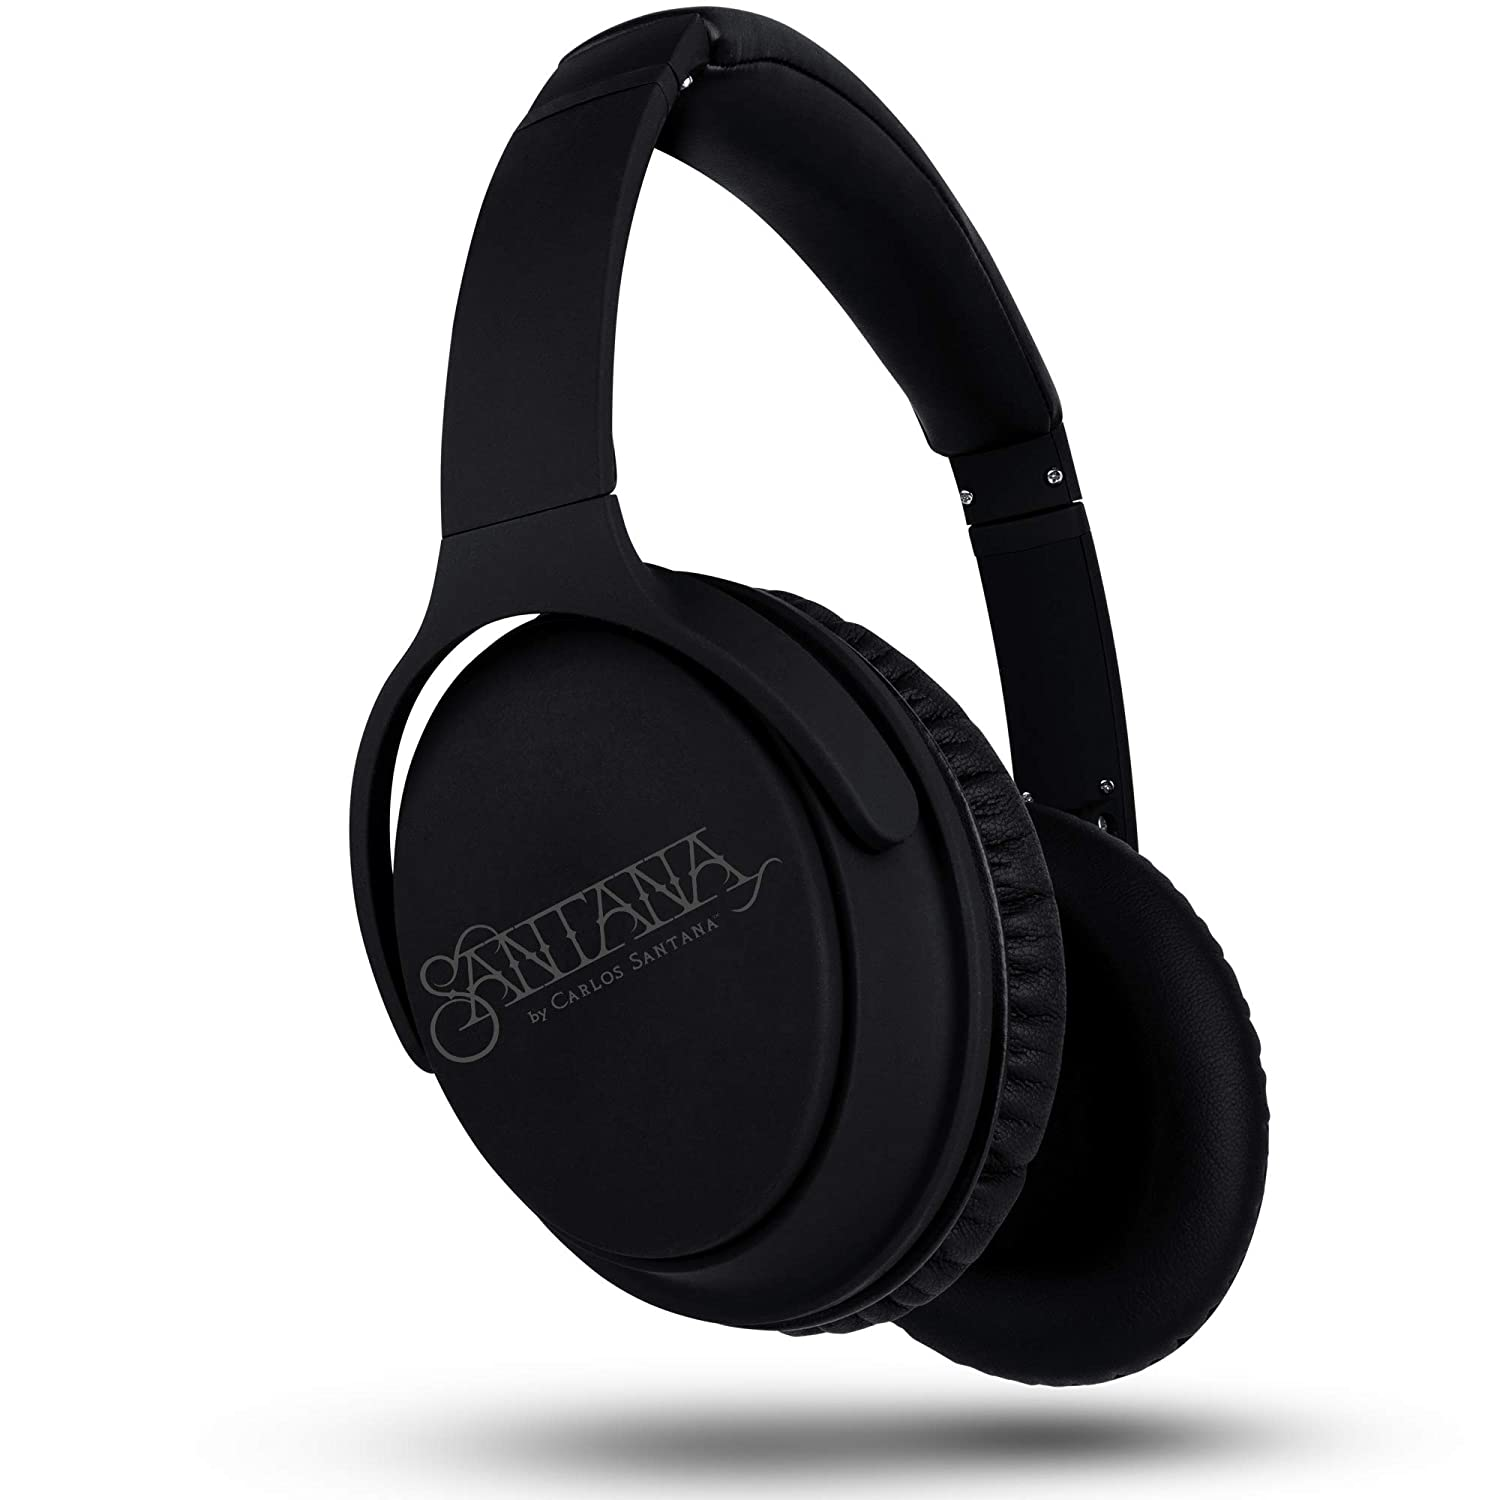 OYE by Carlos Santana Bluetooth Headphones Active Noise Cancelling Headphones Thundering Bass Integrated Microphone, Plush Protein Earpads, Travel/Work, Black